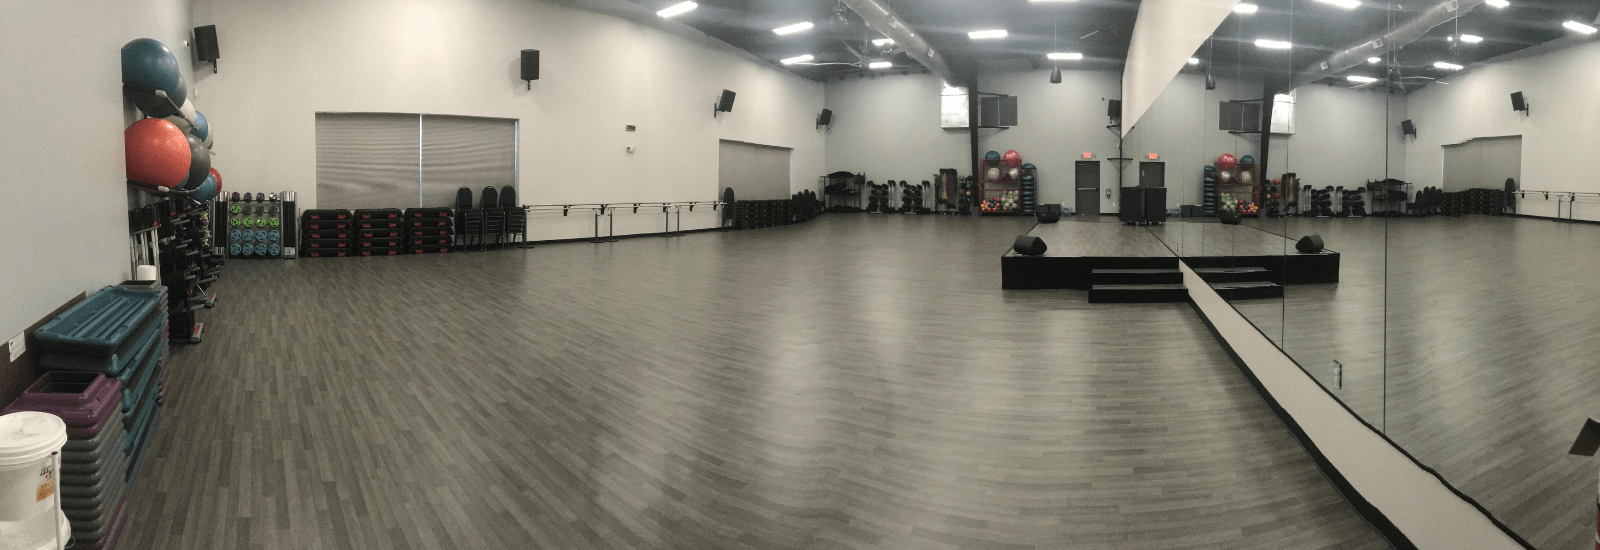 Group Fitness Room with more than 1500 classes per month